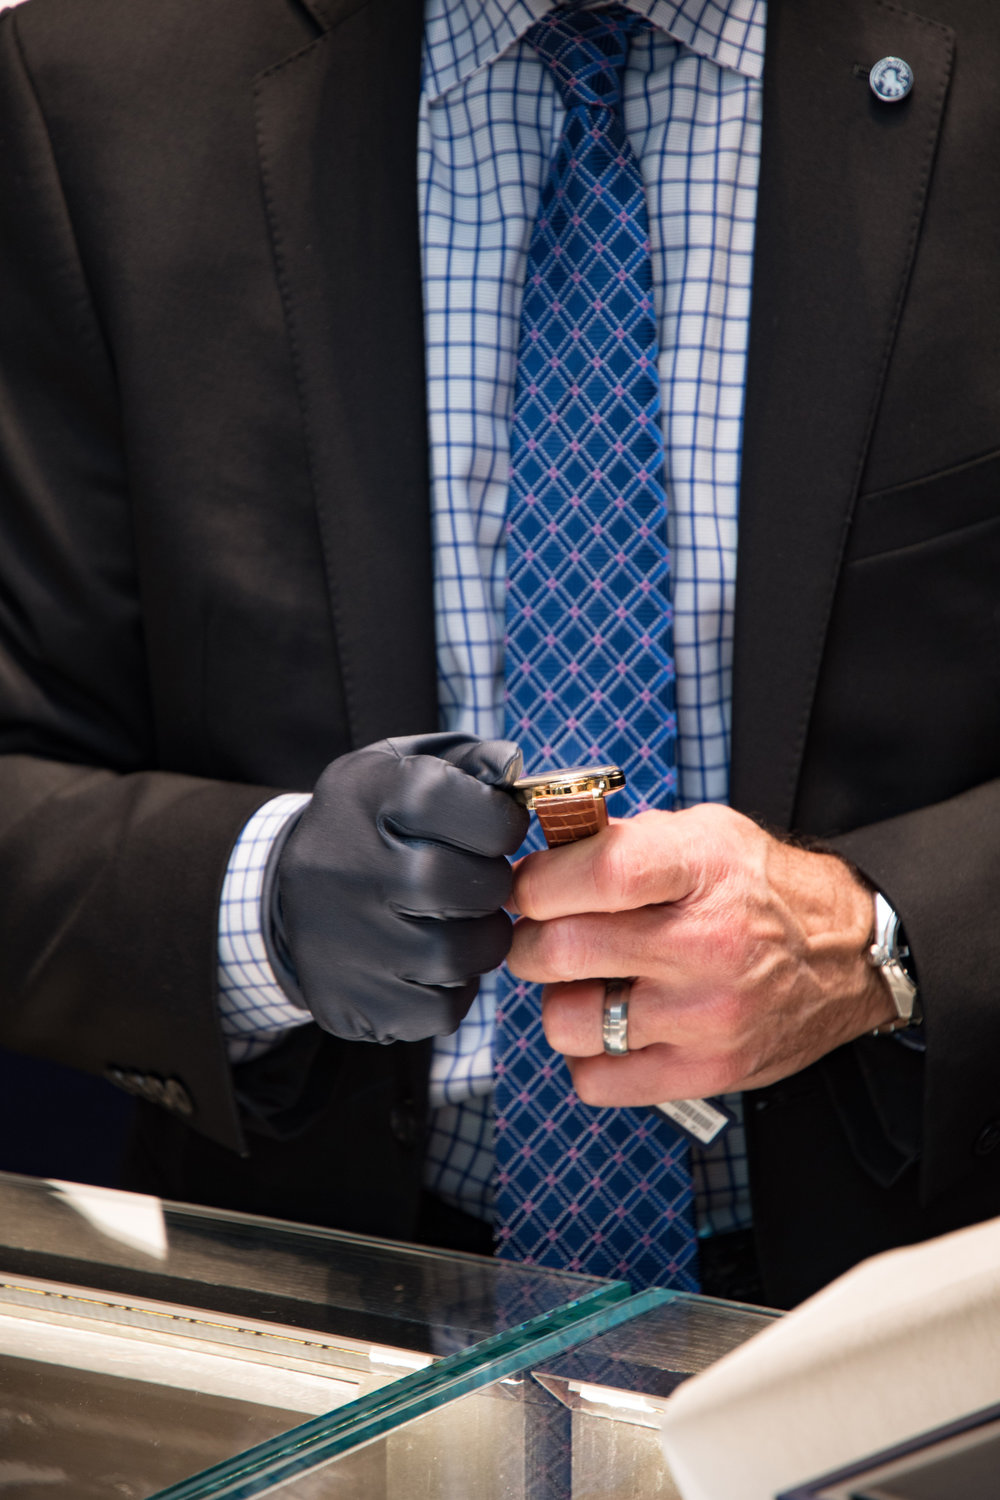 Grand Seiko Boutique Grand Affair Beverly Hills Store Opening Demonstrating Setting Timepiece.jpg